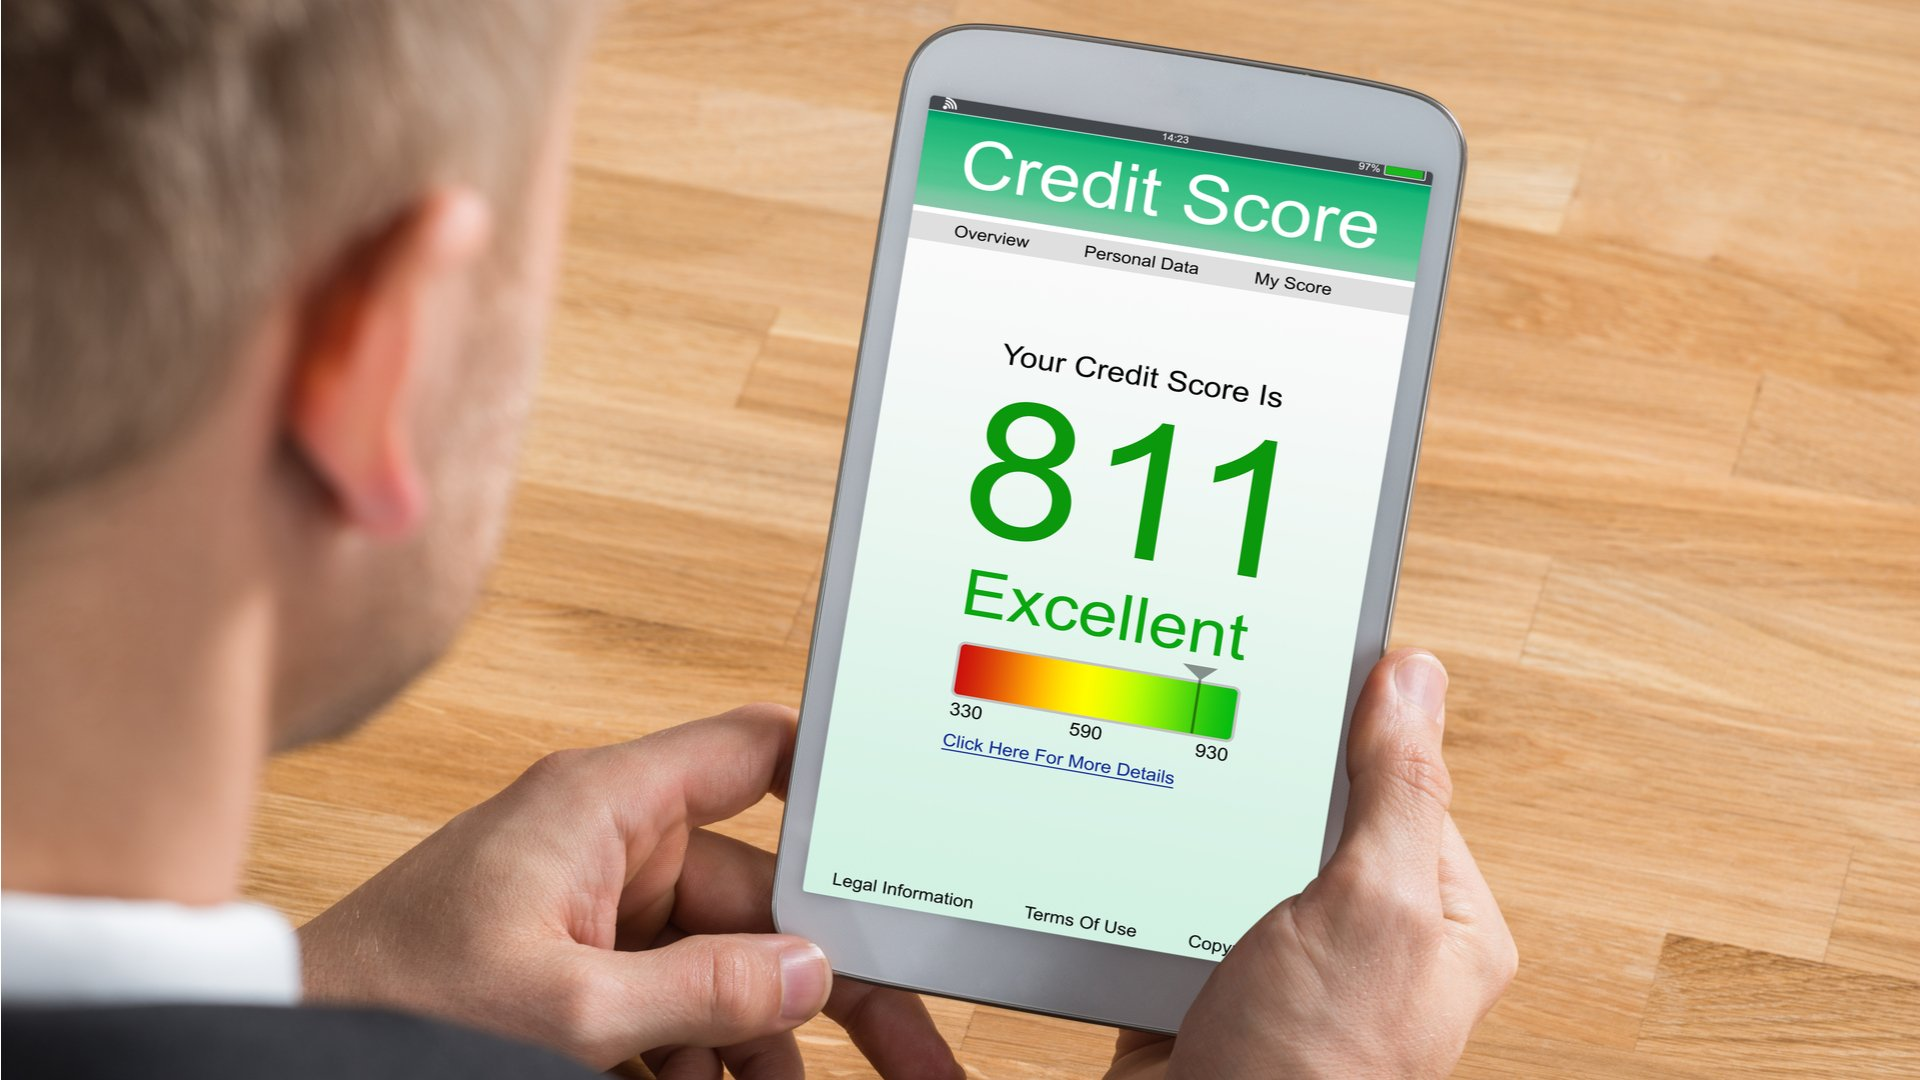 Study Simple Cheap Way To Help Low >> 7 Quick Ways To Raise Your Credit Score Money Talks News